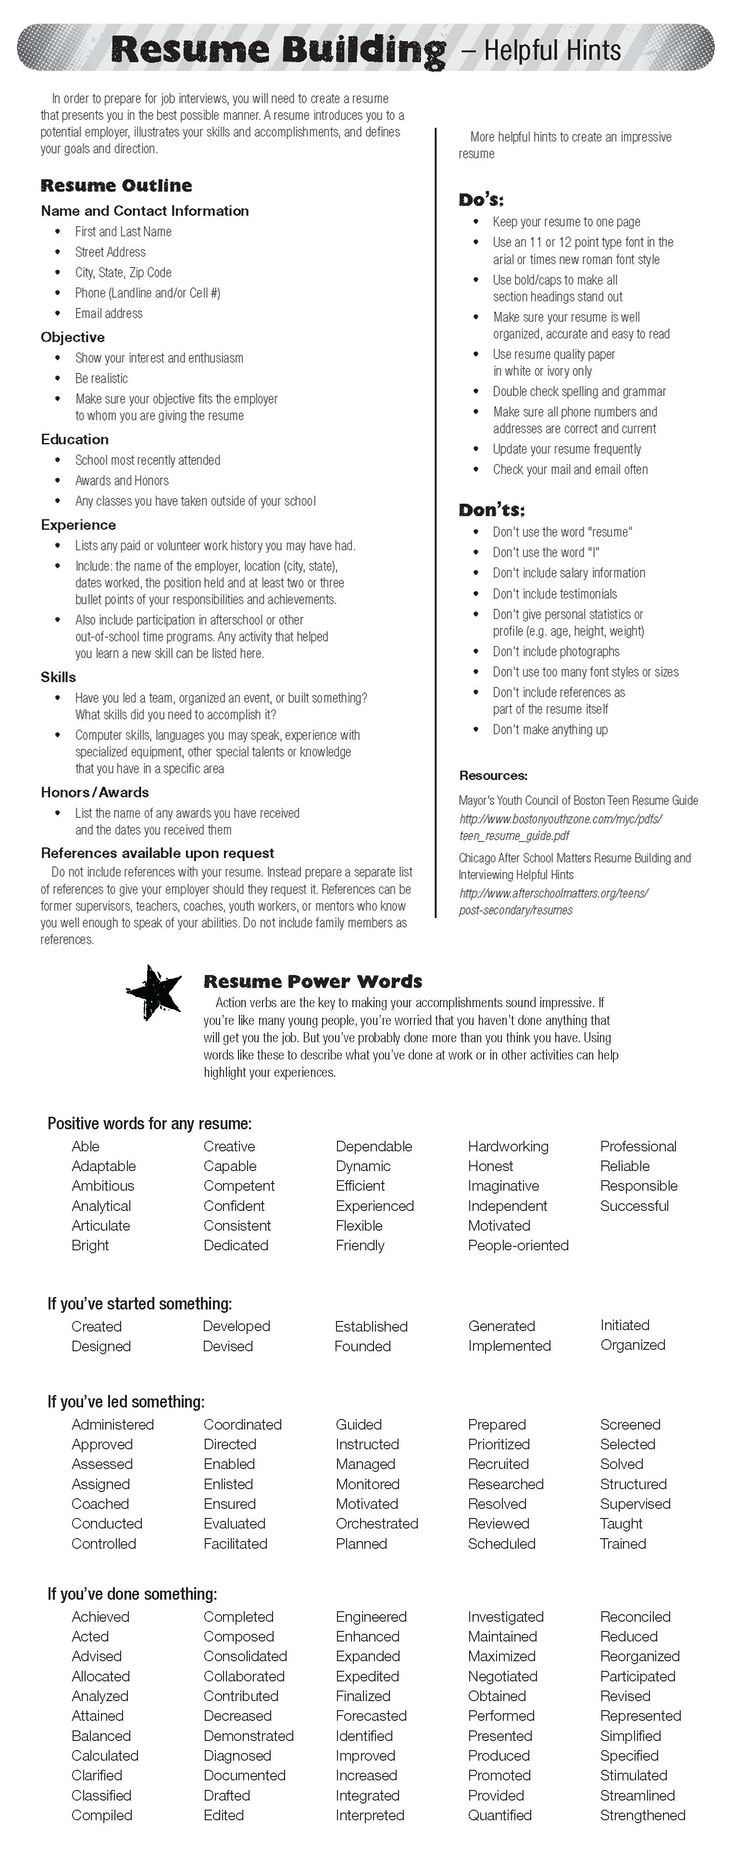 Opposenewapstandardsus  Winsome  Ideas About Resume On Pinterest  Cv Format Resume  With Fair Check Out Todays Resume Building Tips Resume Resumepowerwords With Delectable How To Type A Cover Letter For A Resume Also Images Of A Resume In Addition Do My Resume And Cna Description For Resume As Well As Resume Objective For Career Change Additionally Create Resume Free Online From Pinterestcom With Opposenewapstandardsus  Fair  Ideas About Resume On Pinterest  Cv Format Resume  With Delectable Check Out Todays Resume Building Tips Resume Resumepowerwords And Winsome How To Type A Cover Letter For A Resume Also Images Of A Resume In Addition Do My Resume From Pinterestcom